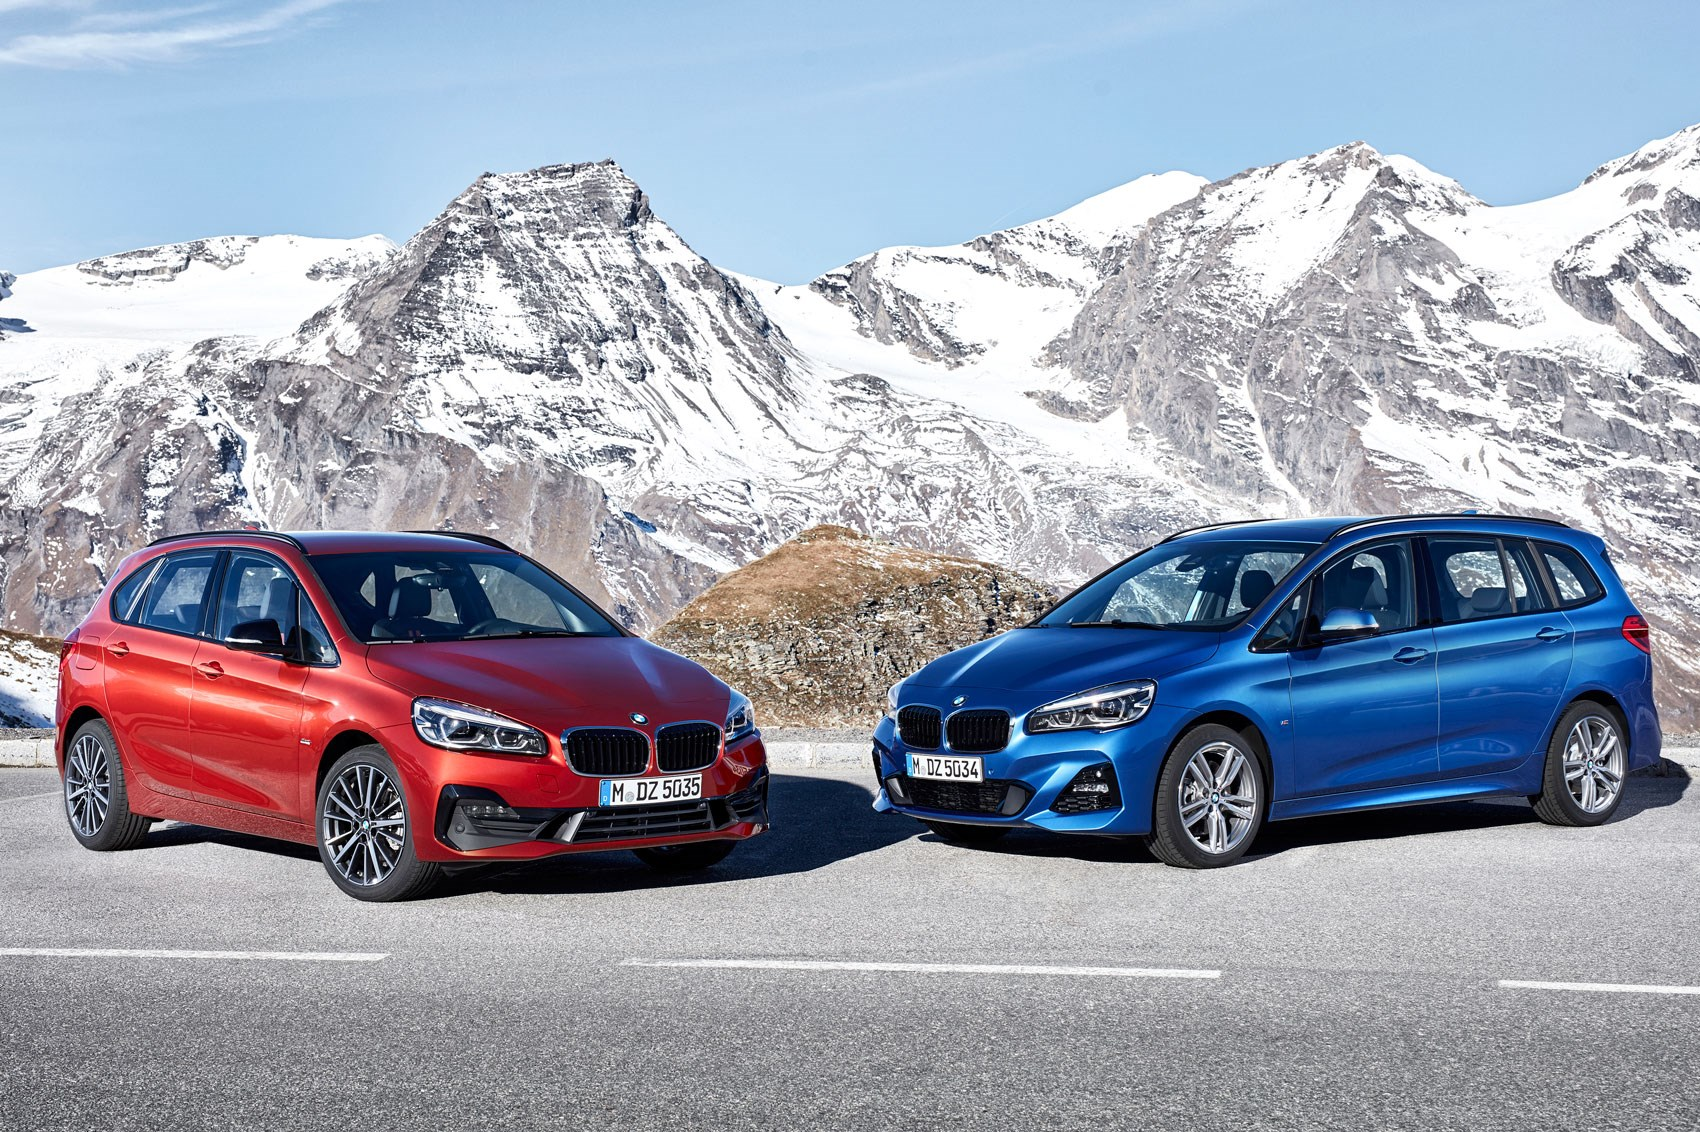 bmw 2 series active tourer and 2 series gran tourer facelift. Black Bedroom Furniture Sets. Home Design Ideas